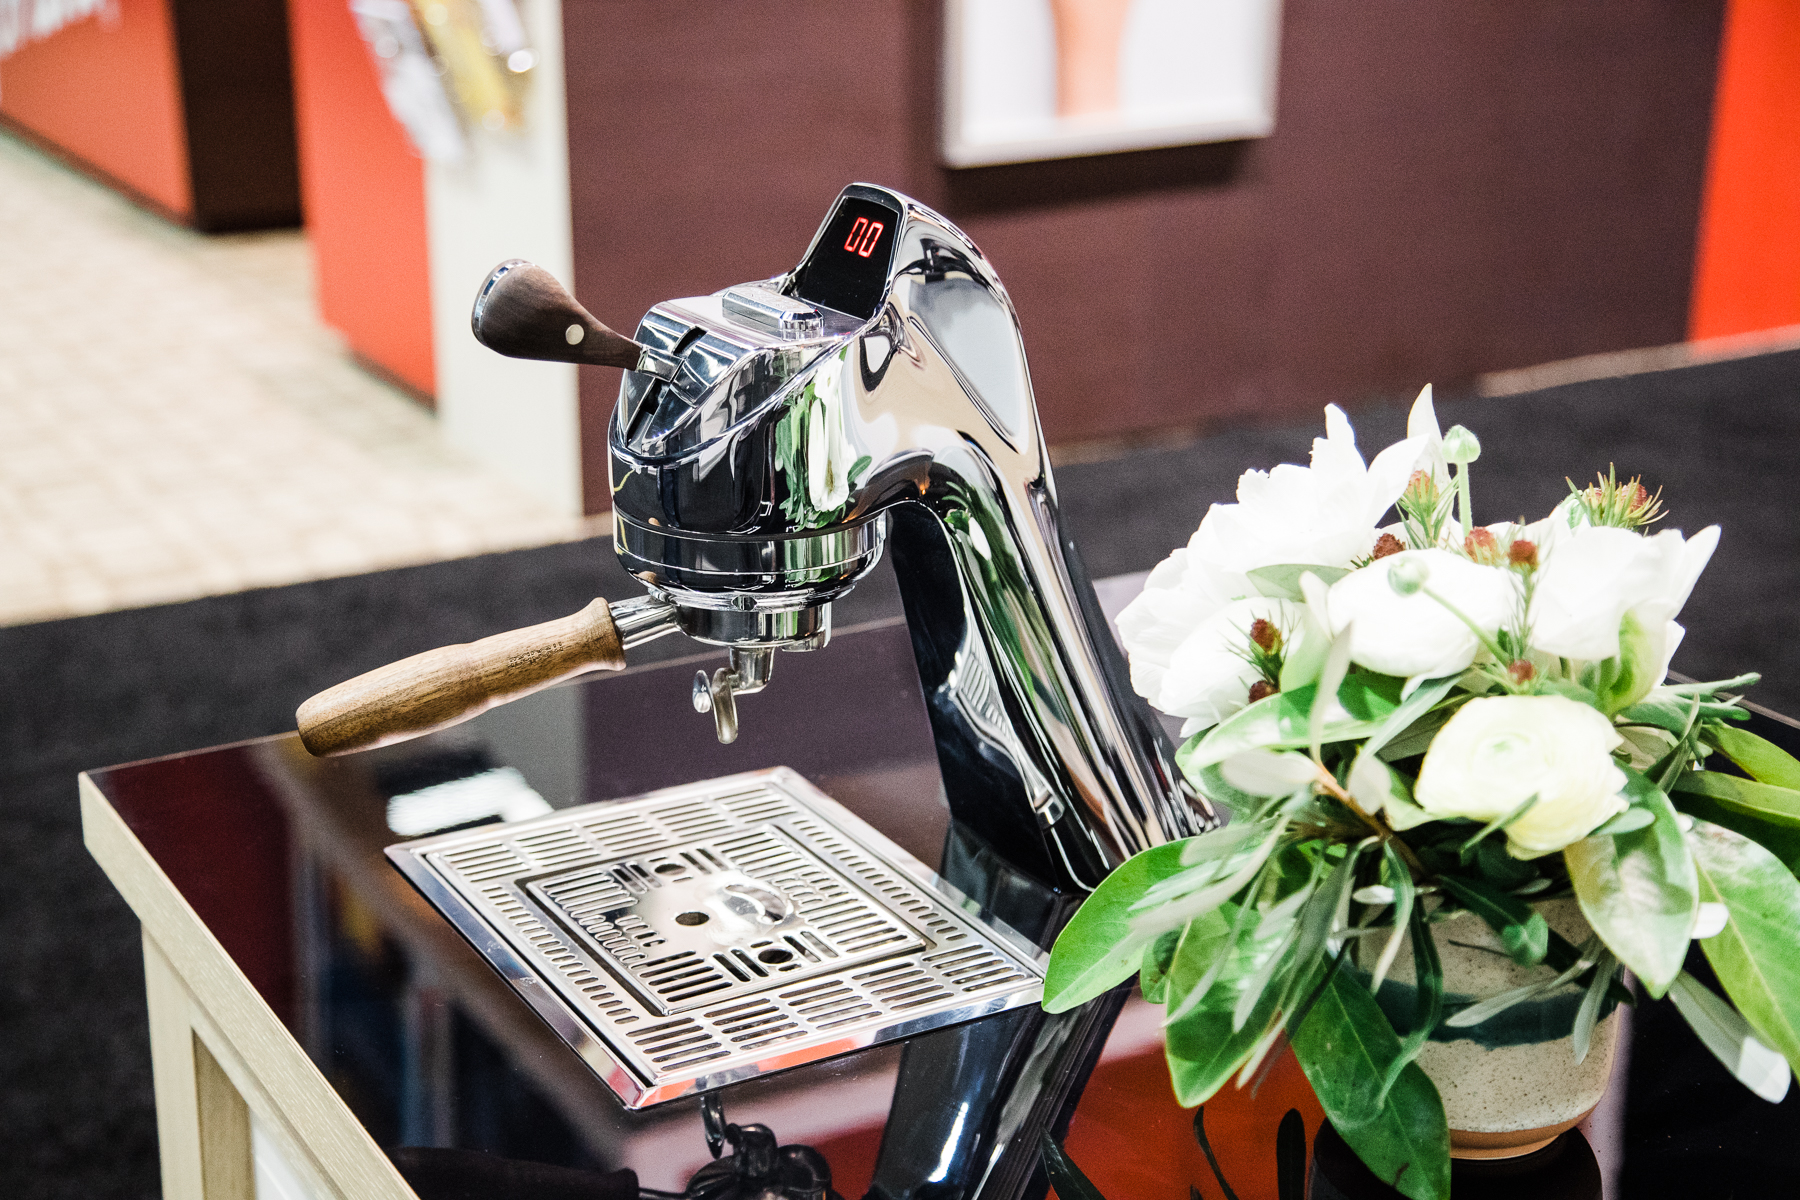 The neck and group head of the Modbar Espresso AV next to a plant on a counter top at the 2018 Coffee Expo.